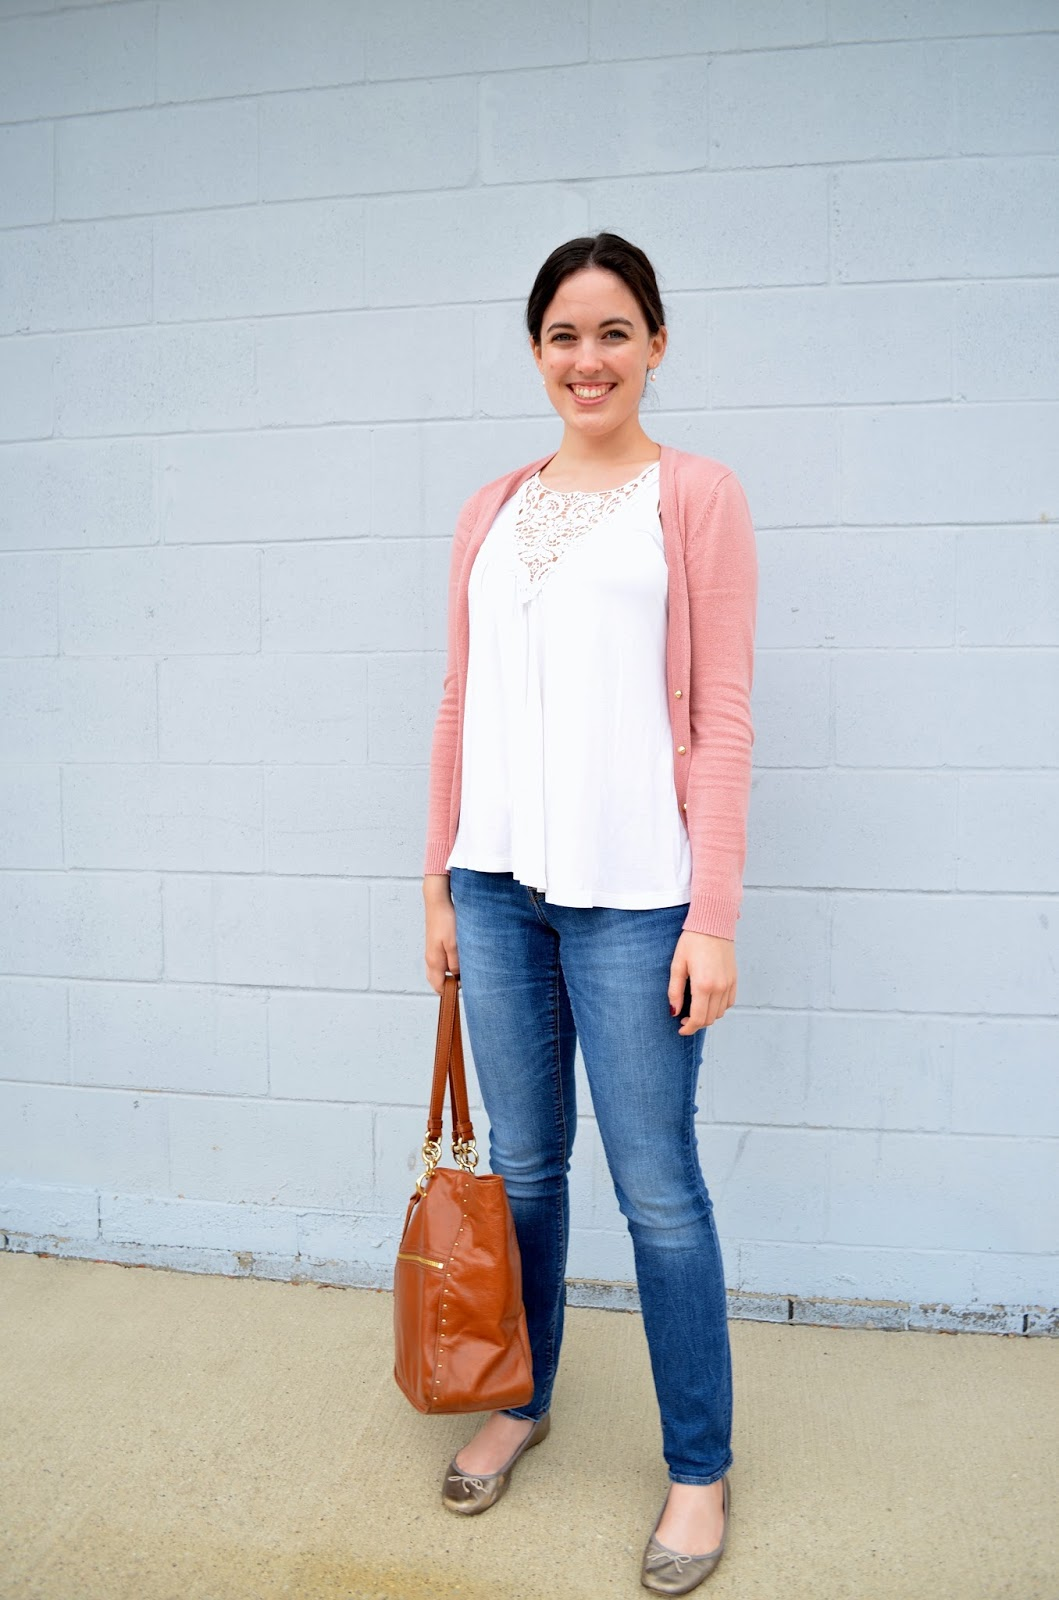 What I wore on a Daytime Date